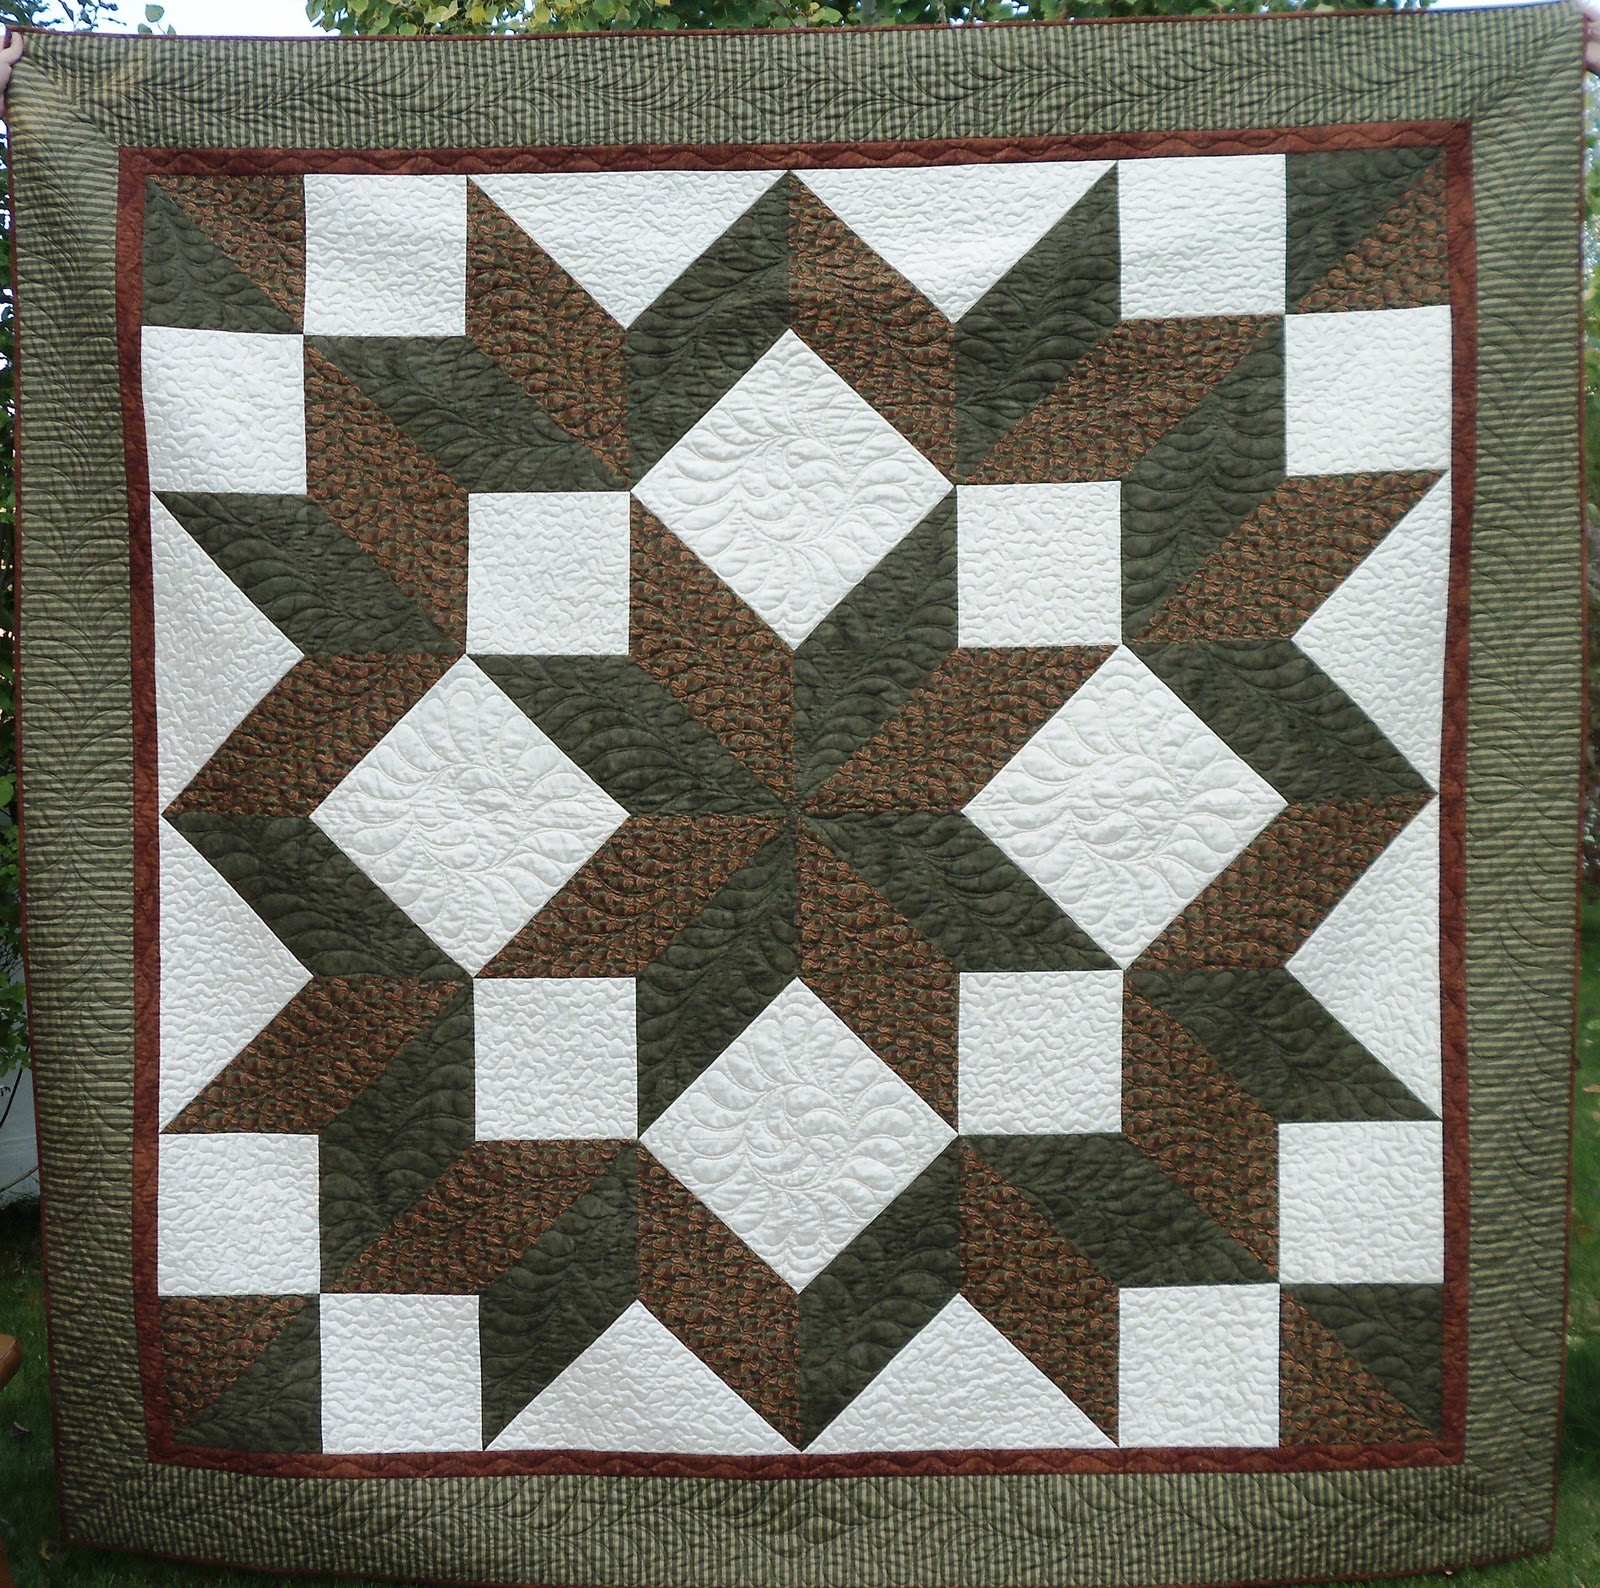 Quiltscapes A Carpenters Star